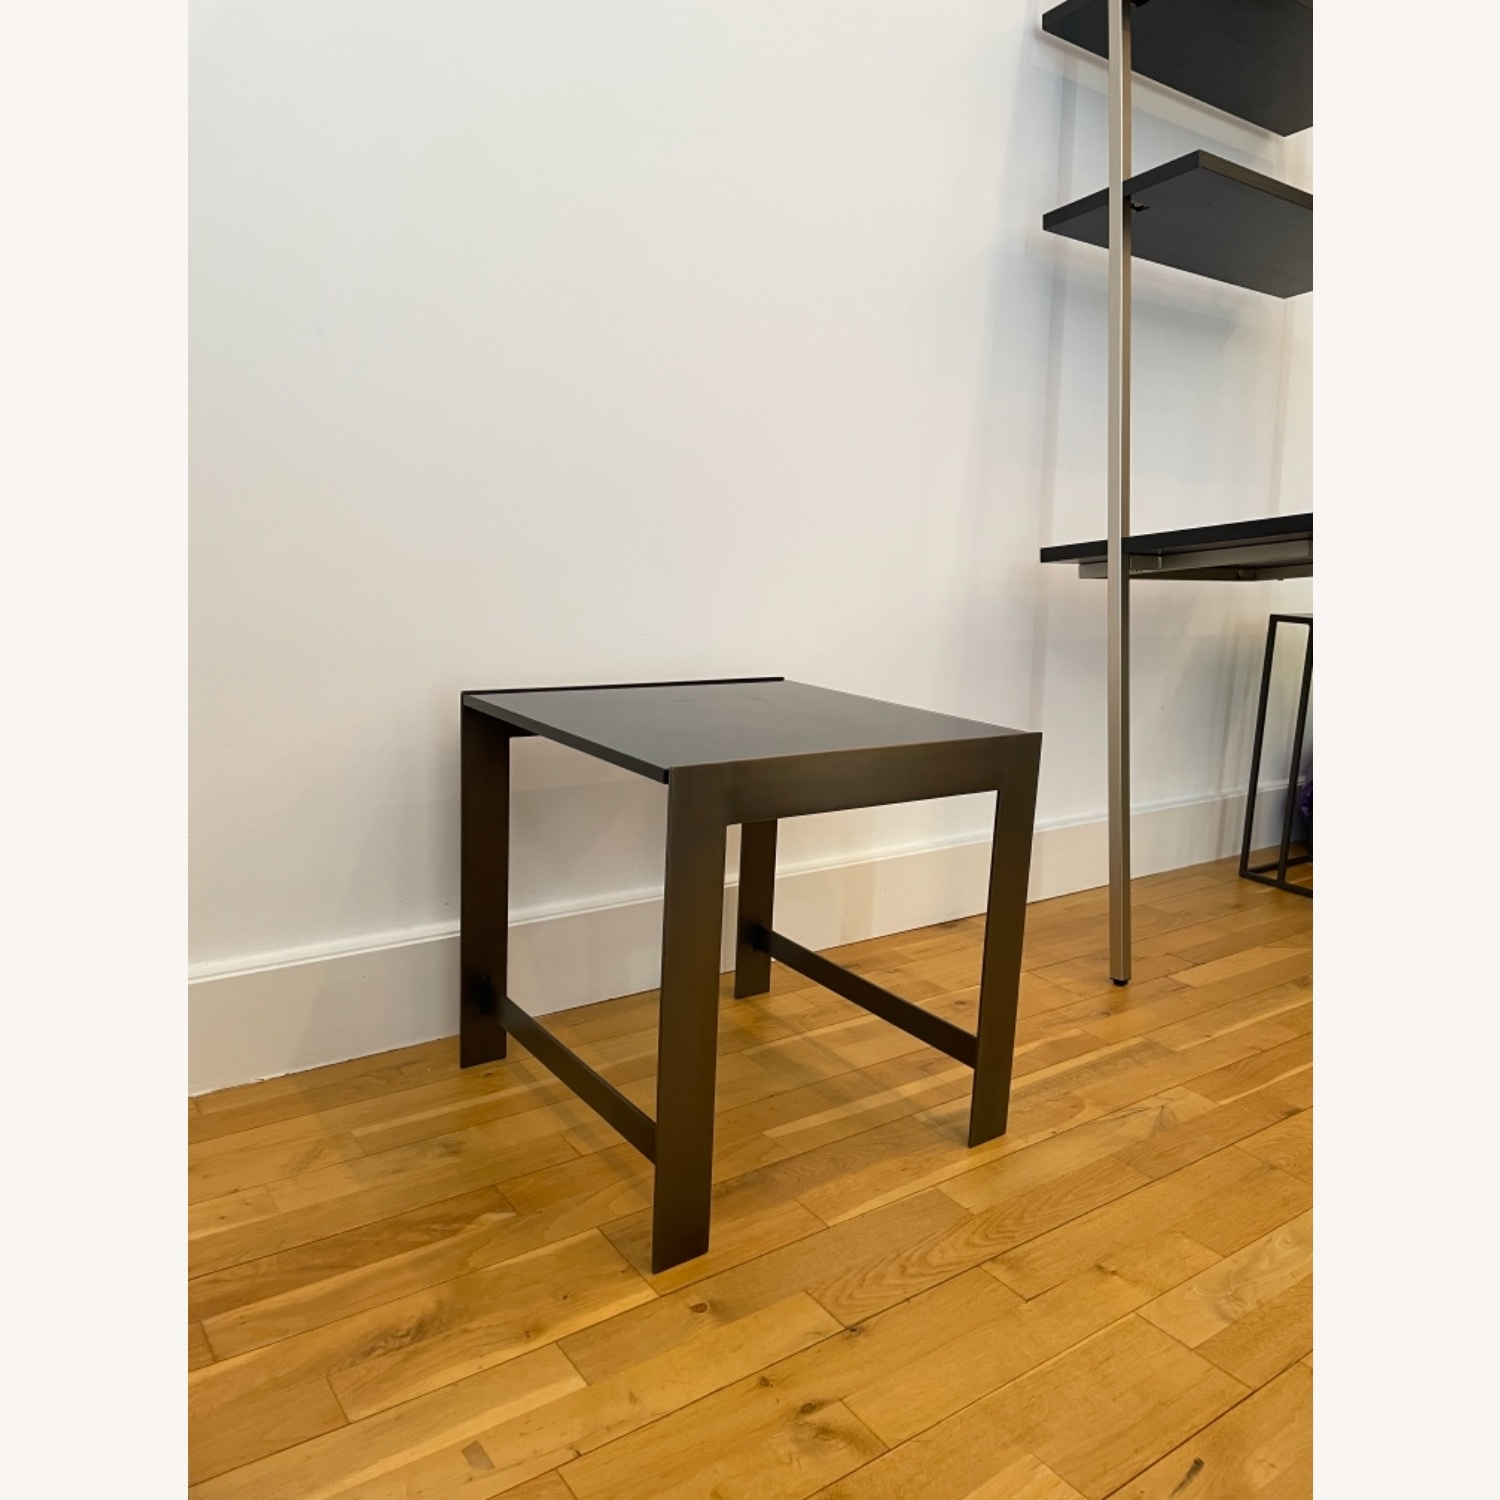 Black Glass Table with Brass Legs - image-2